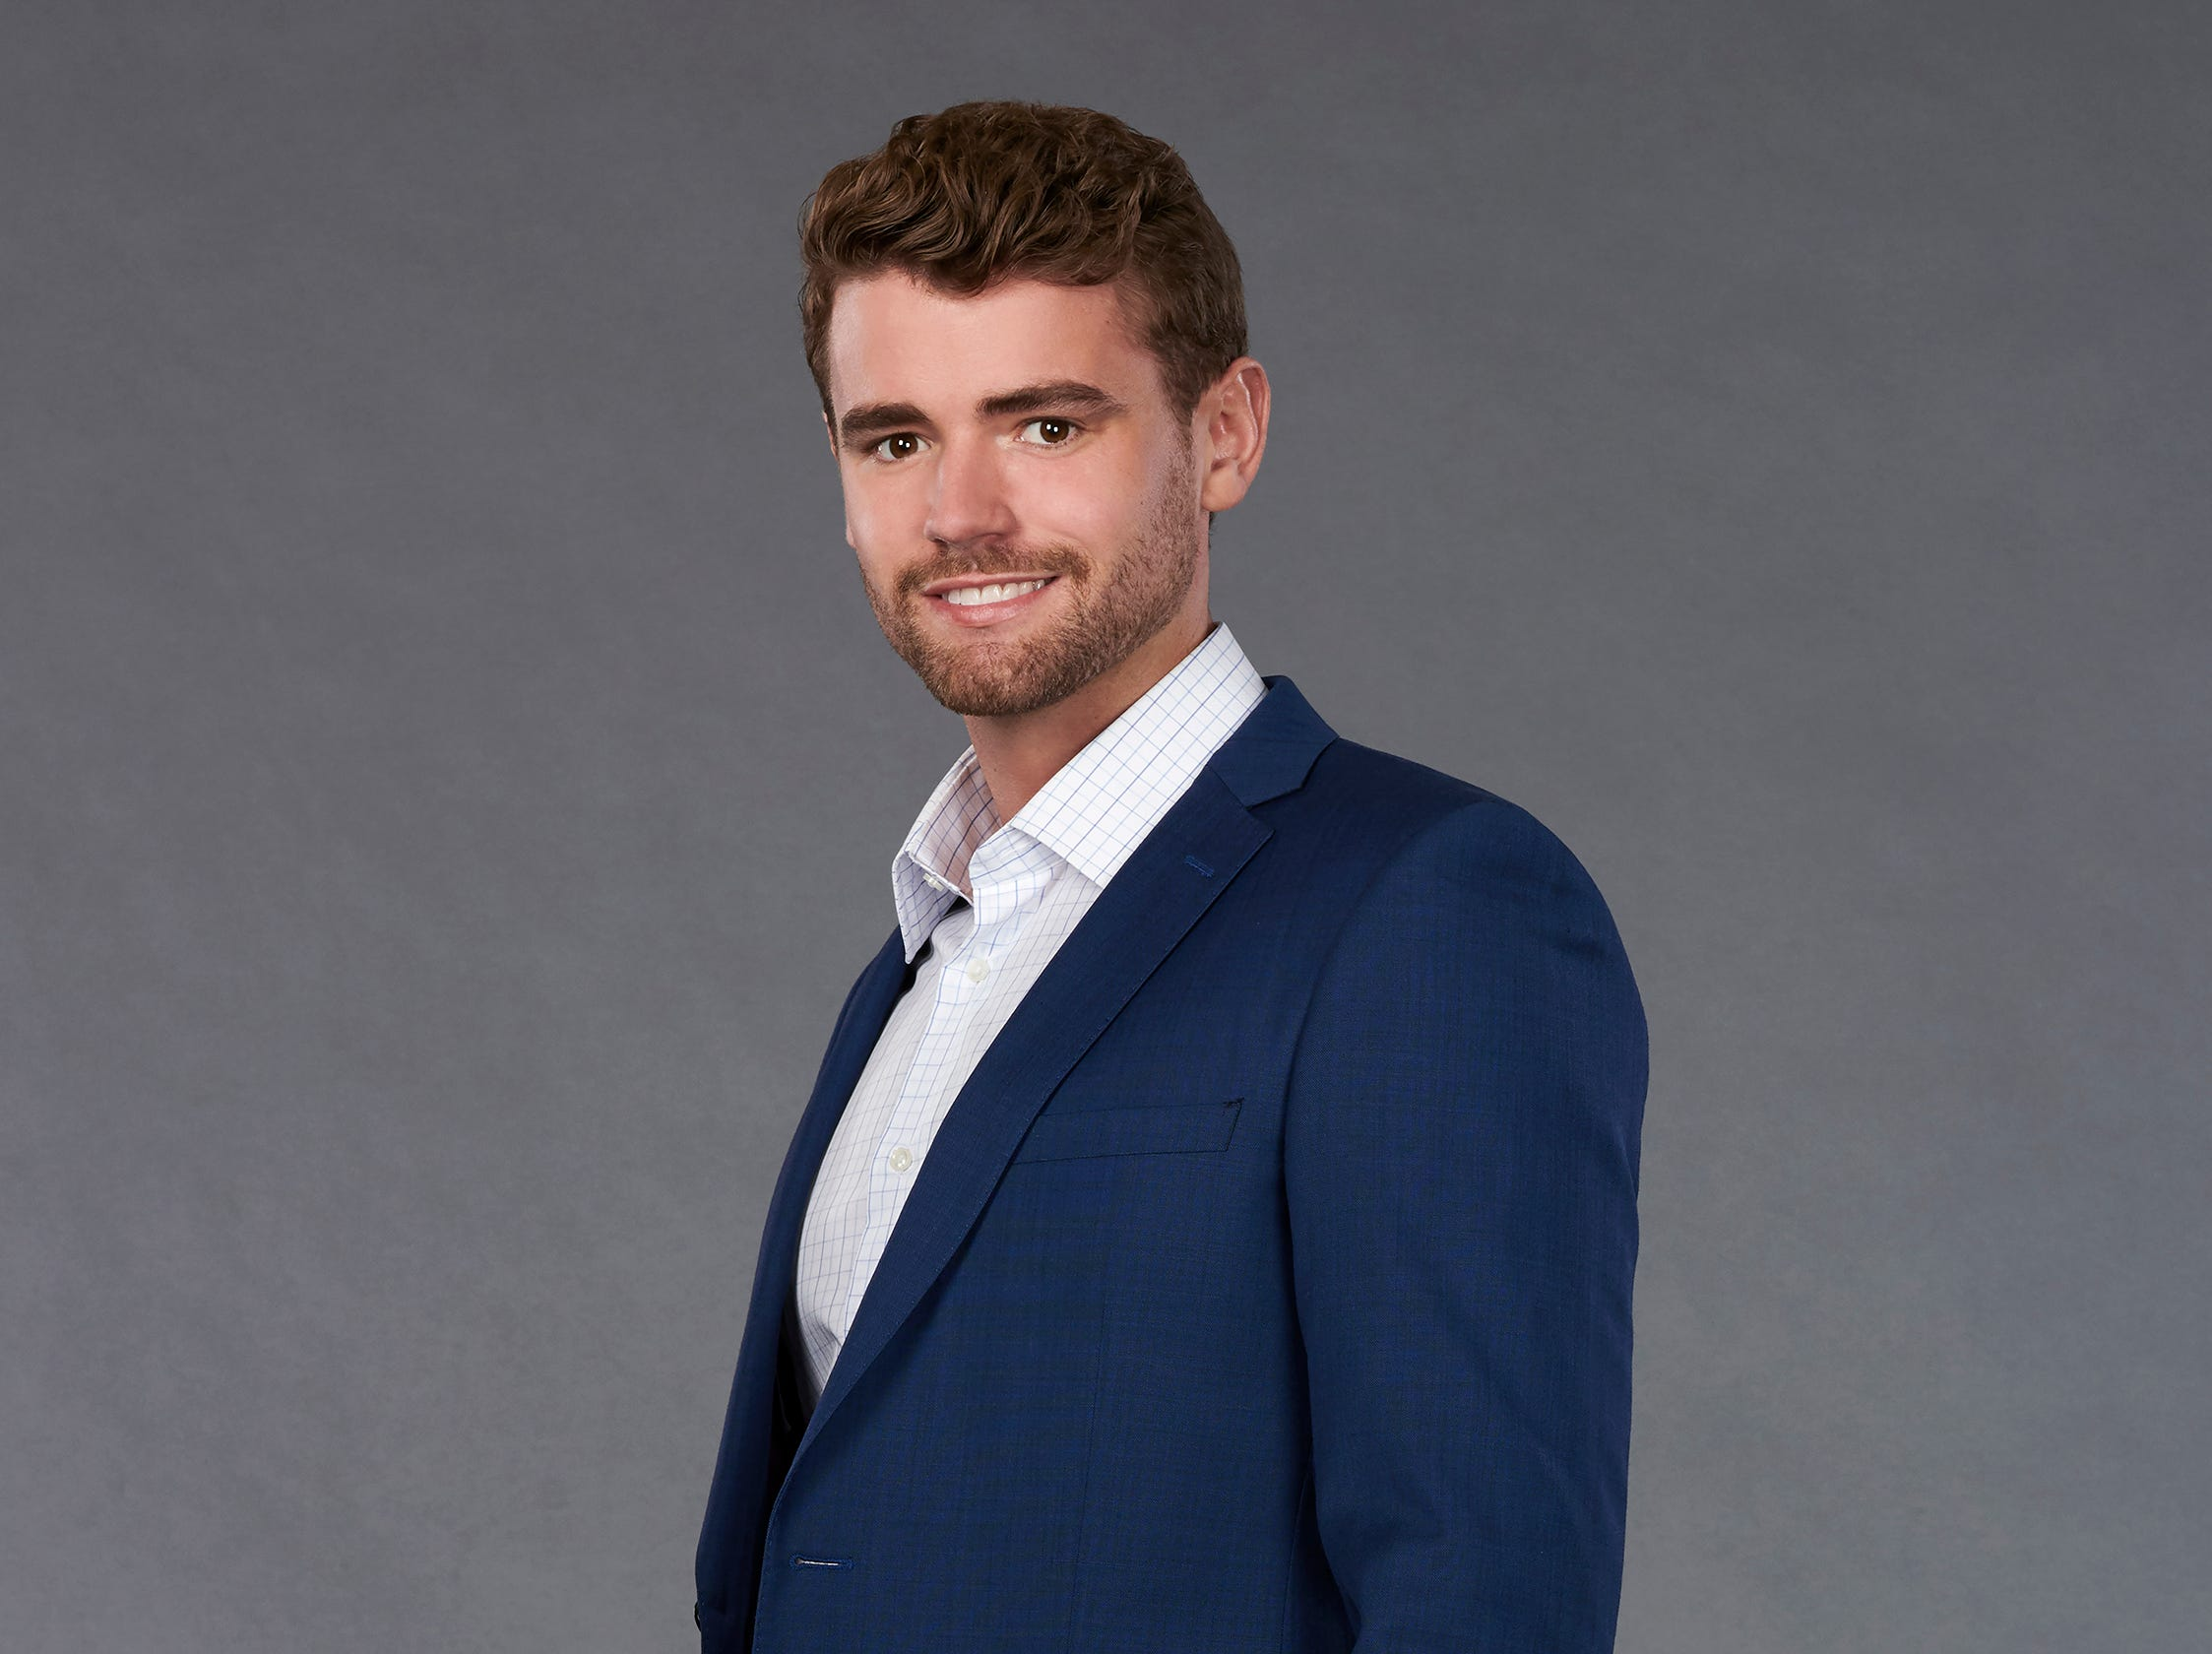 """The Bachelorette"" Season 23 contestant:  Luke S., 29, Washington, D.C., political consultant"